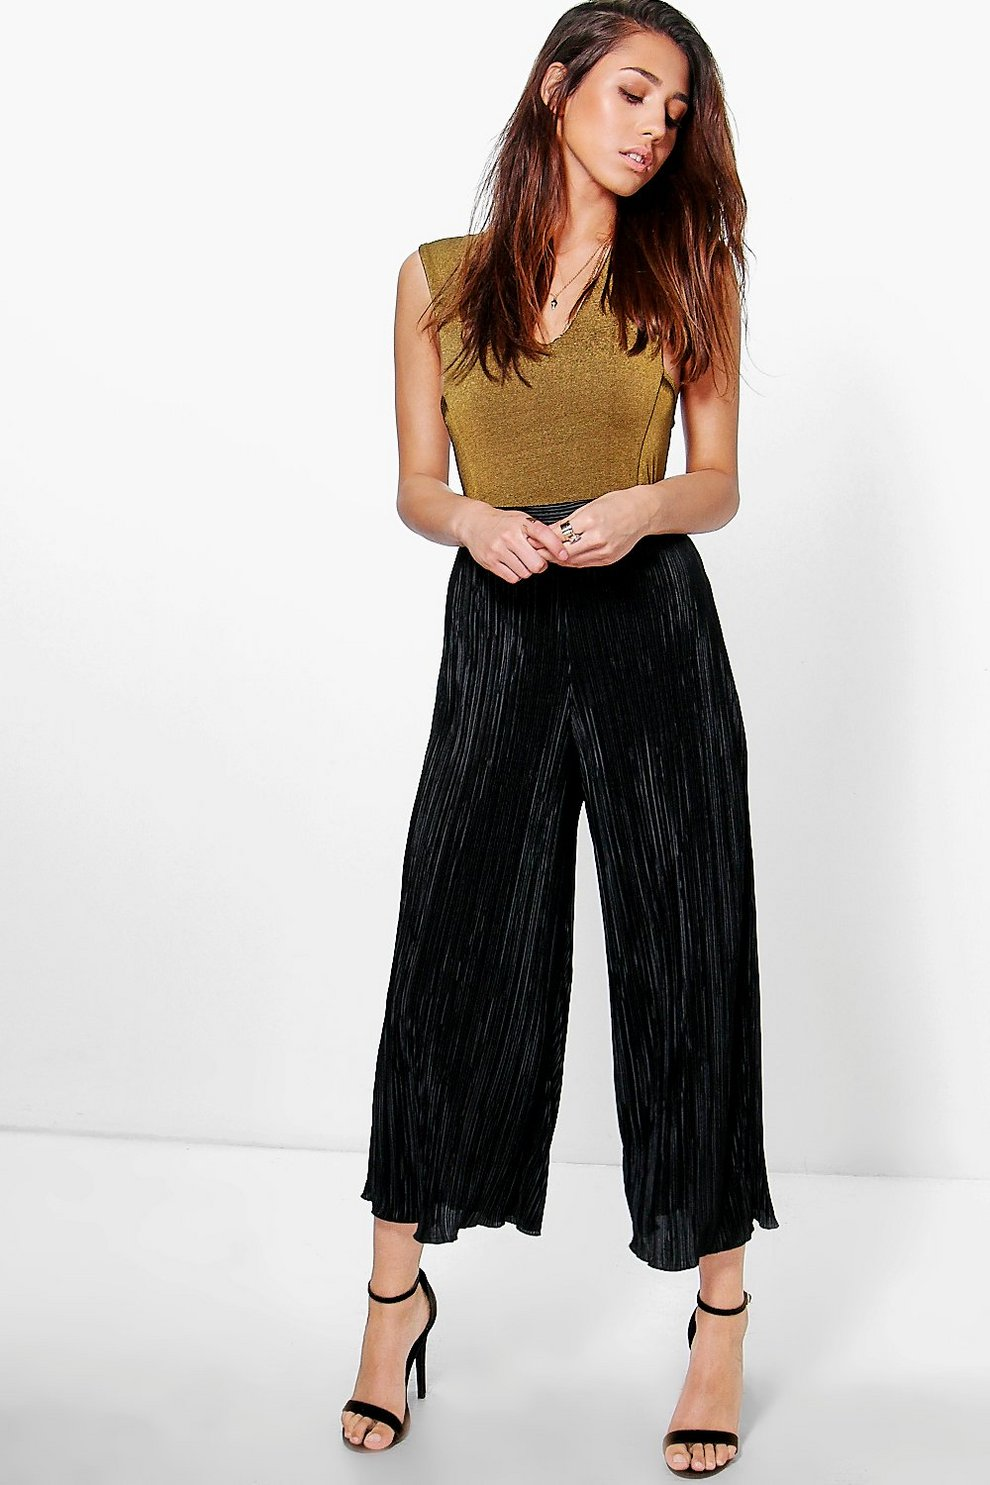 100% Authentic Boohoo Pleated Wide Leg Cropped Culottes For Sale Footlocker Cheap Choice Low Cost kjz1K4A3J